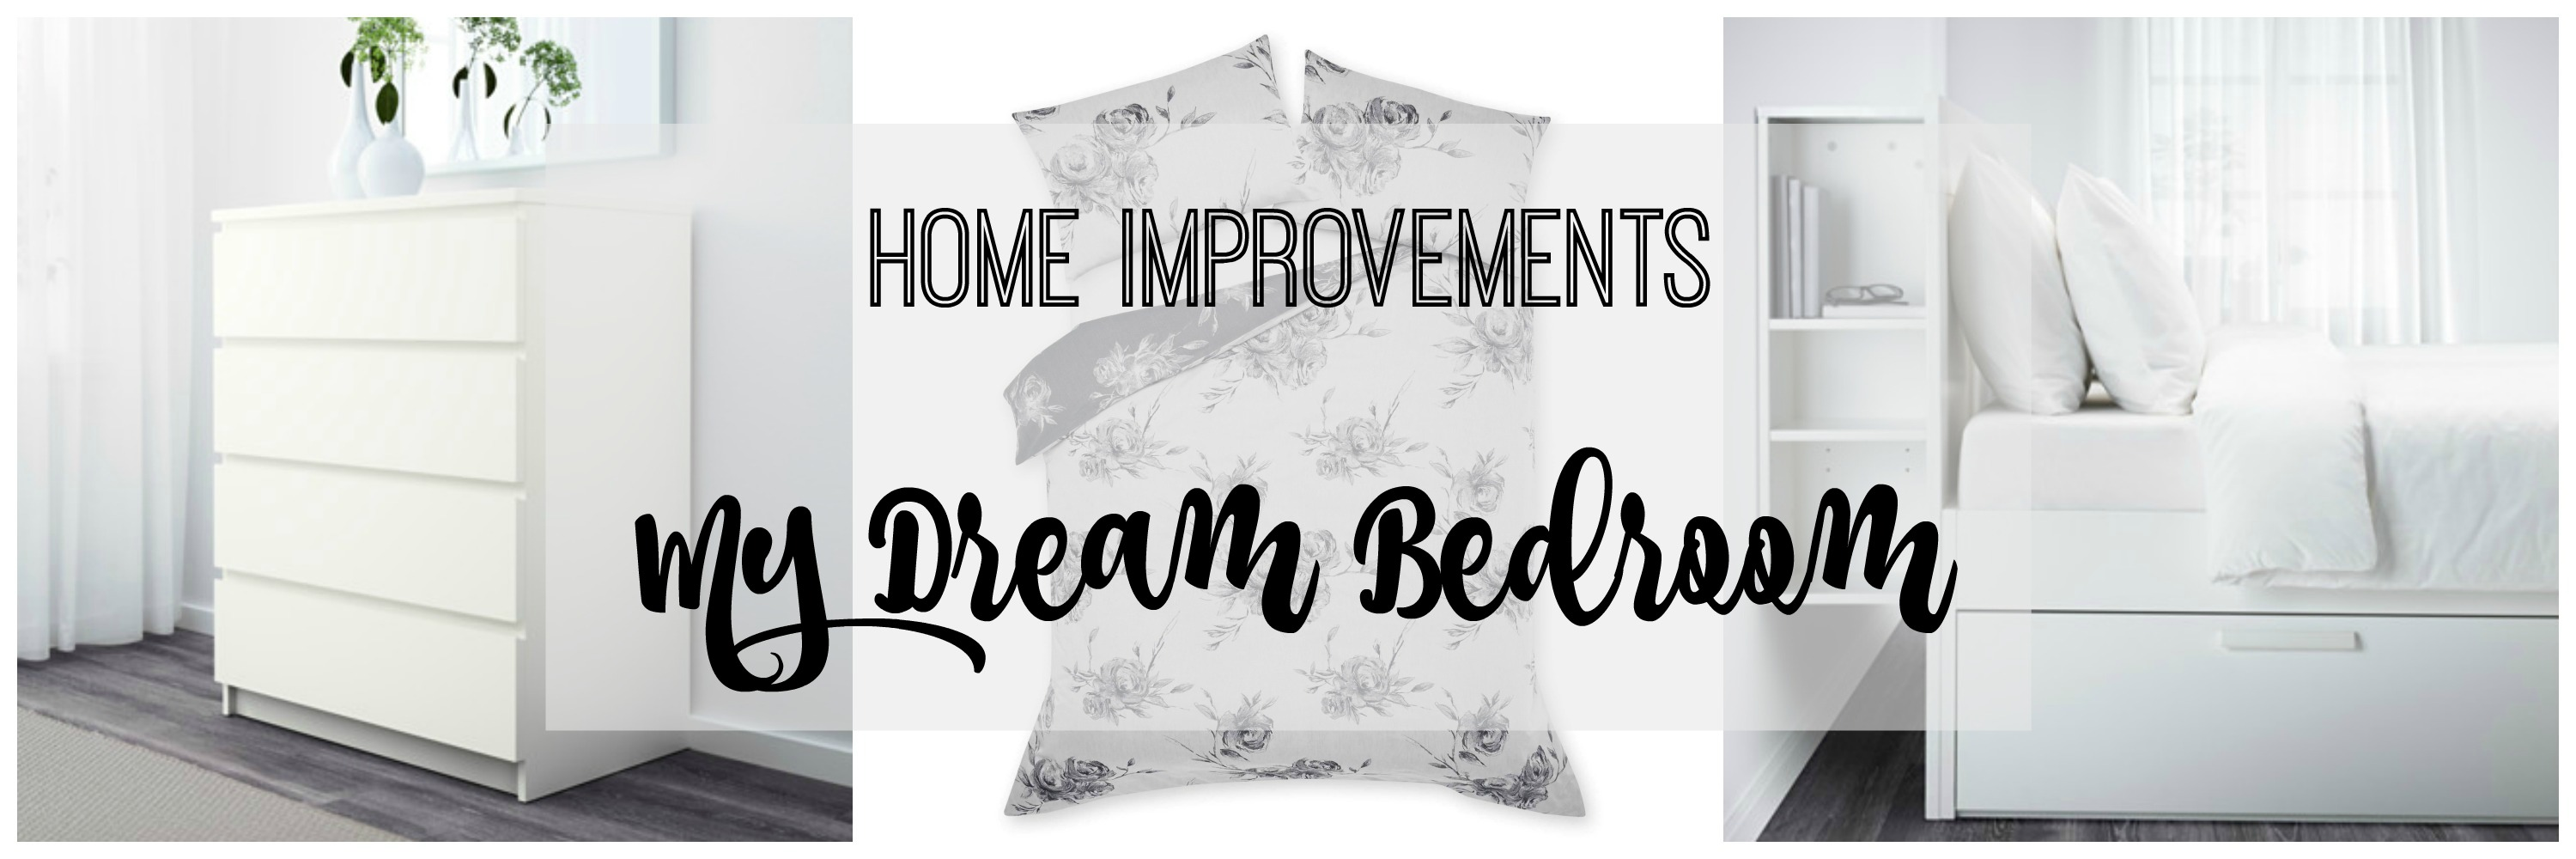 home improvements dream bedroom title